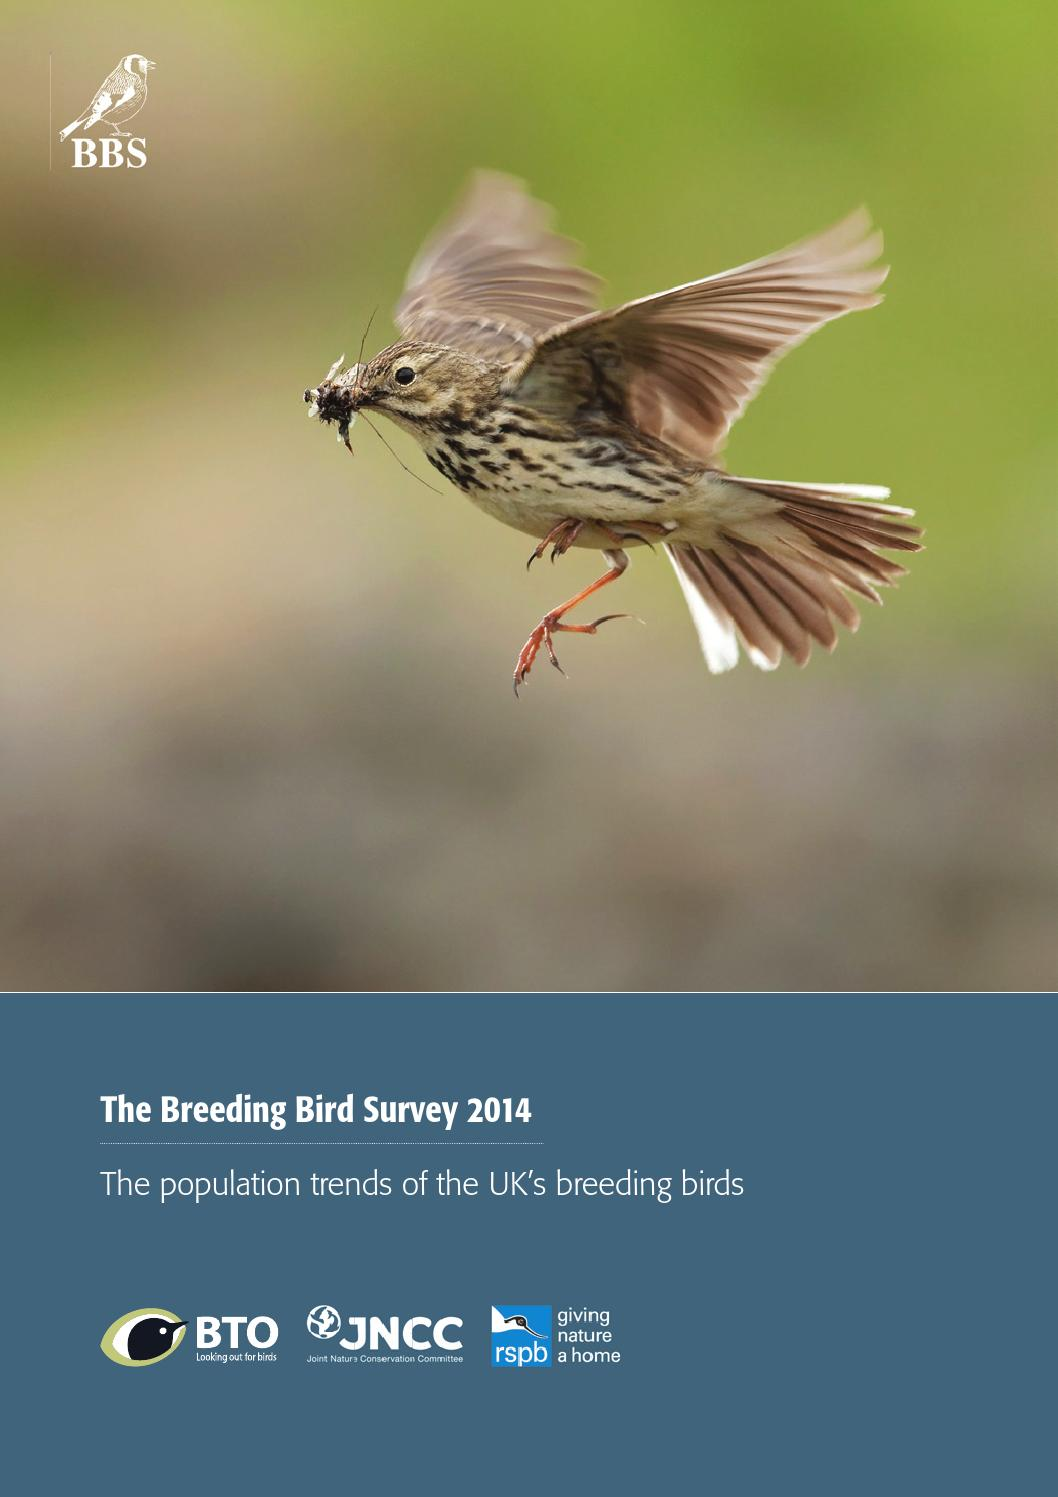 Breeding Bird Survey Report 2014 by British Trust for Ornithology